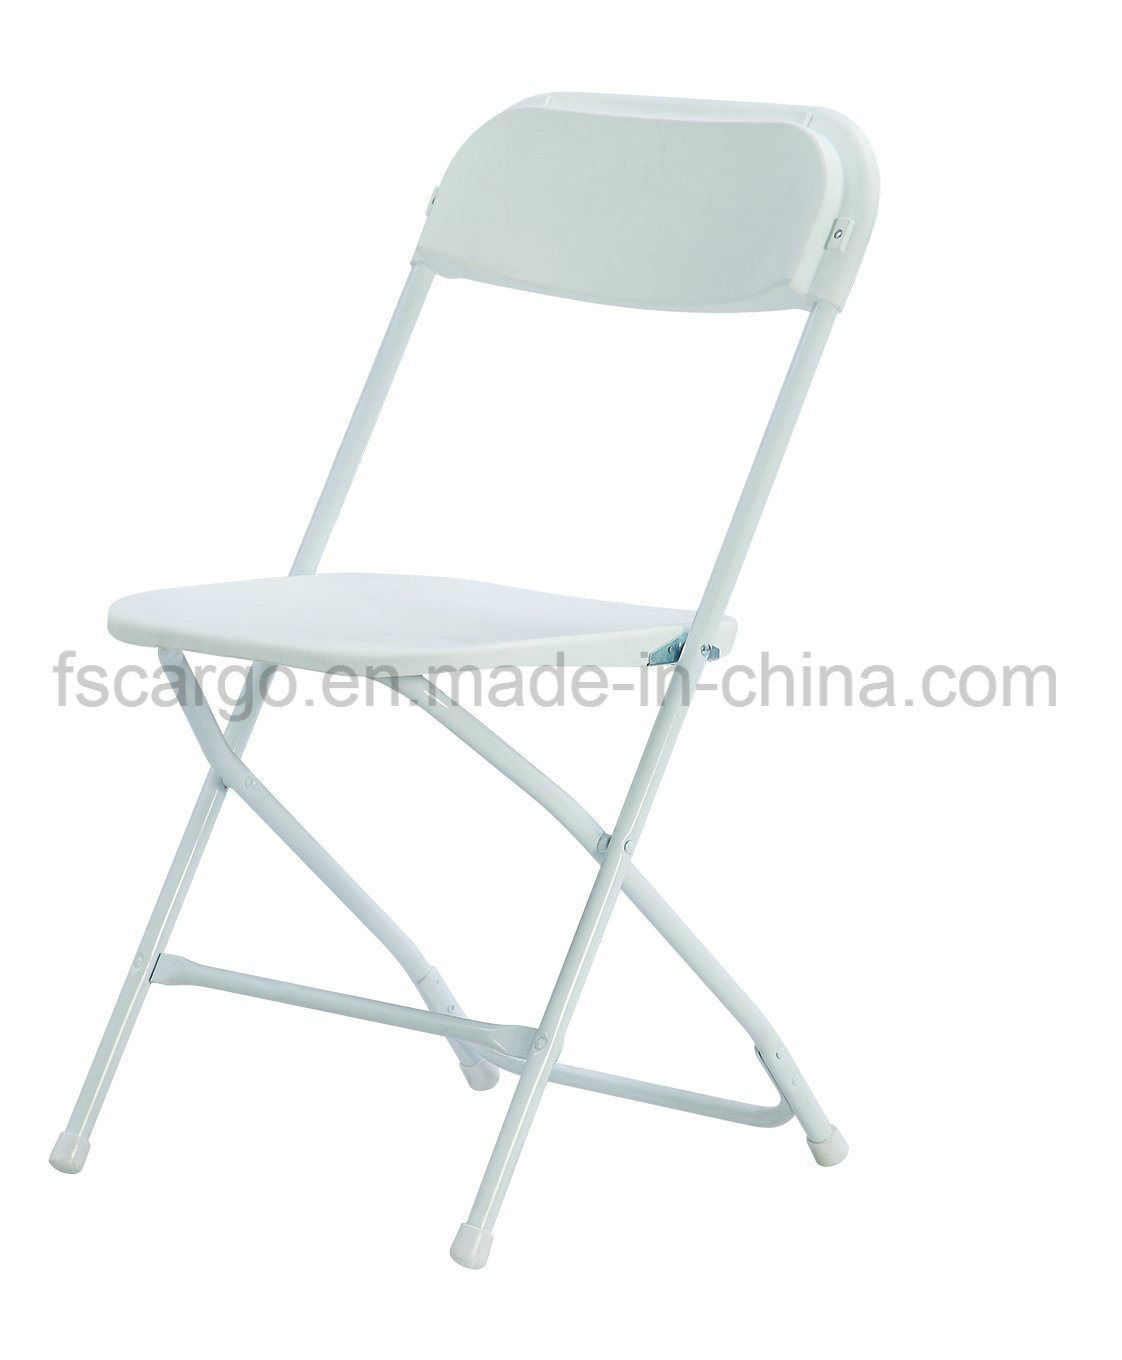 Hot Sell Full White Color Folding Chair for Event Party Used CG B53